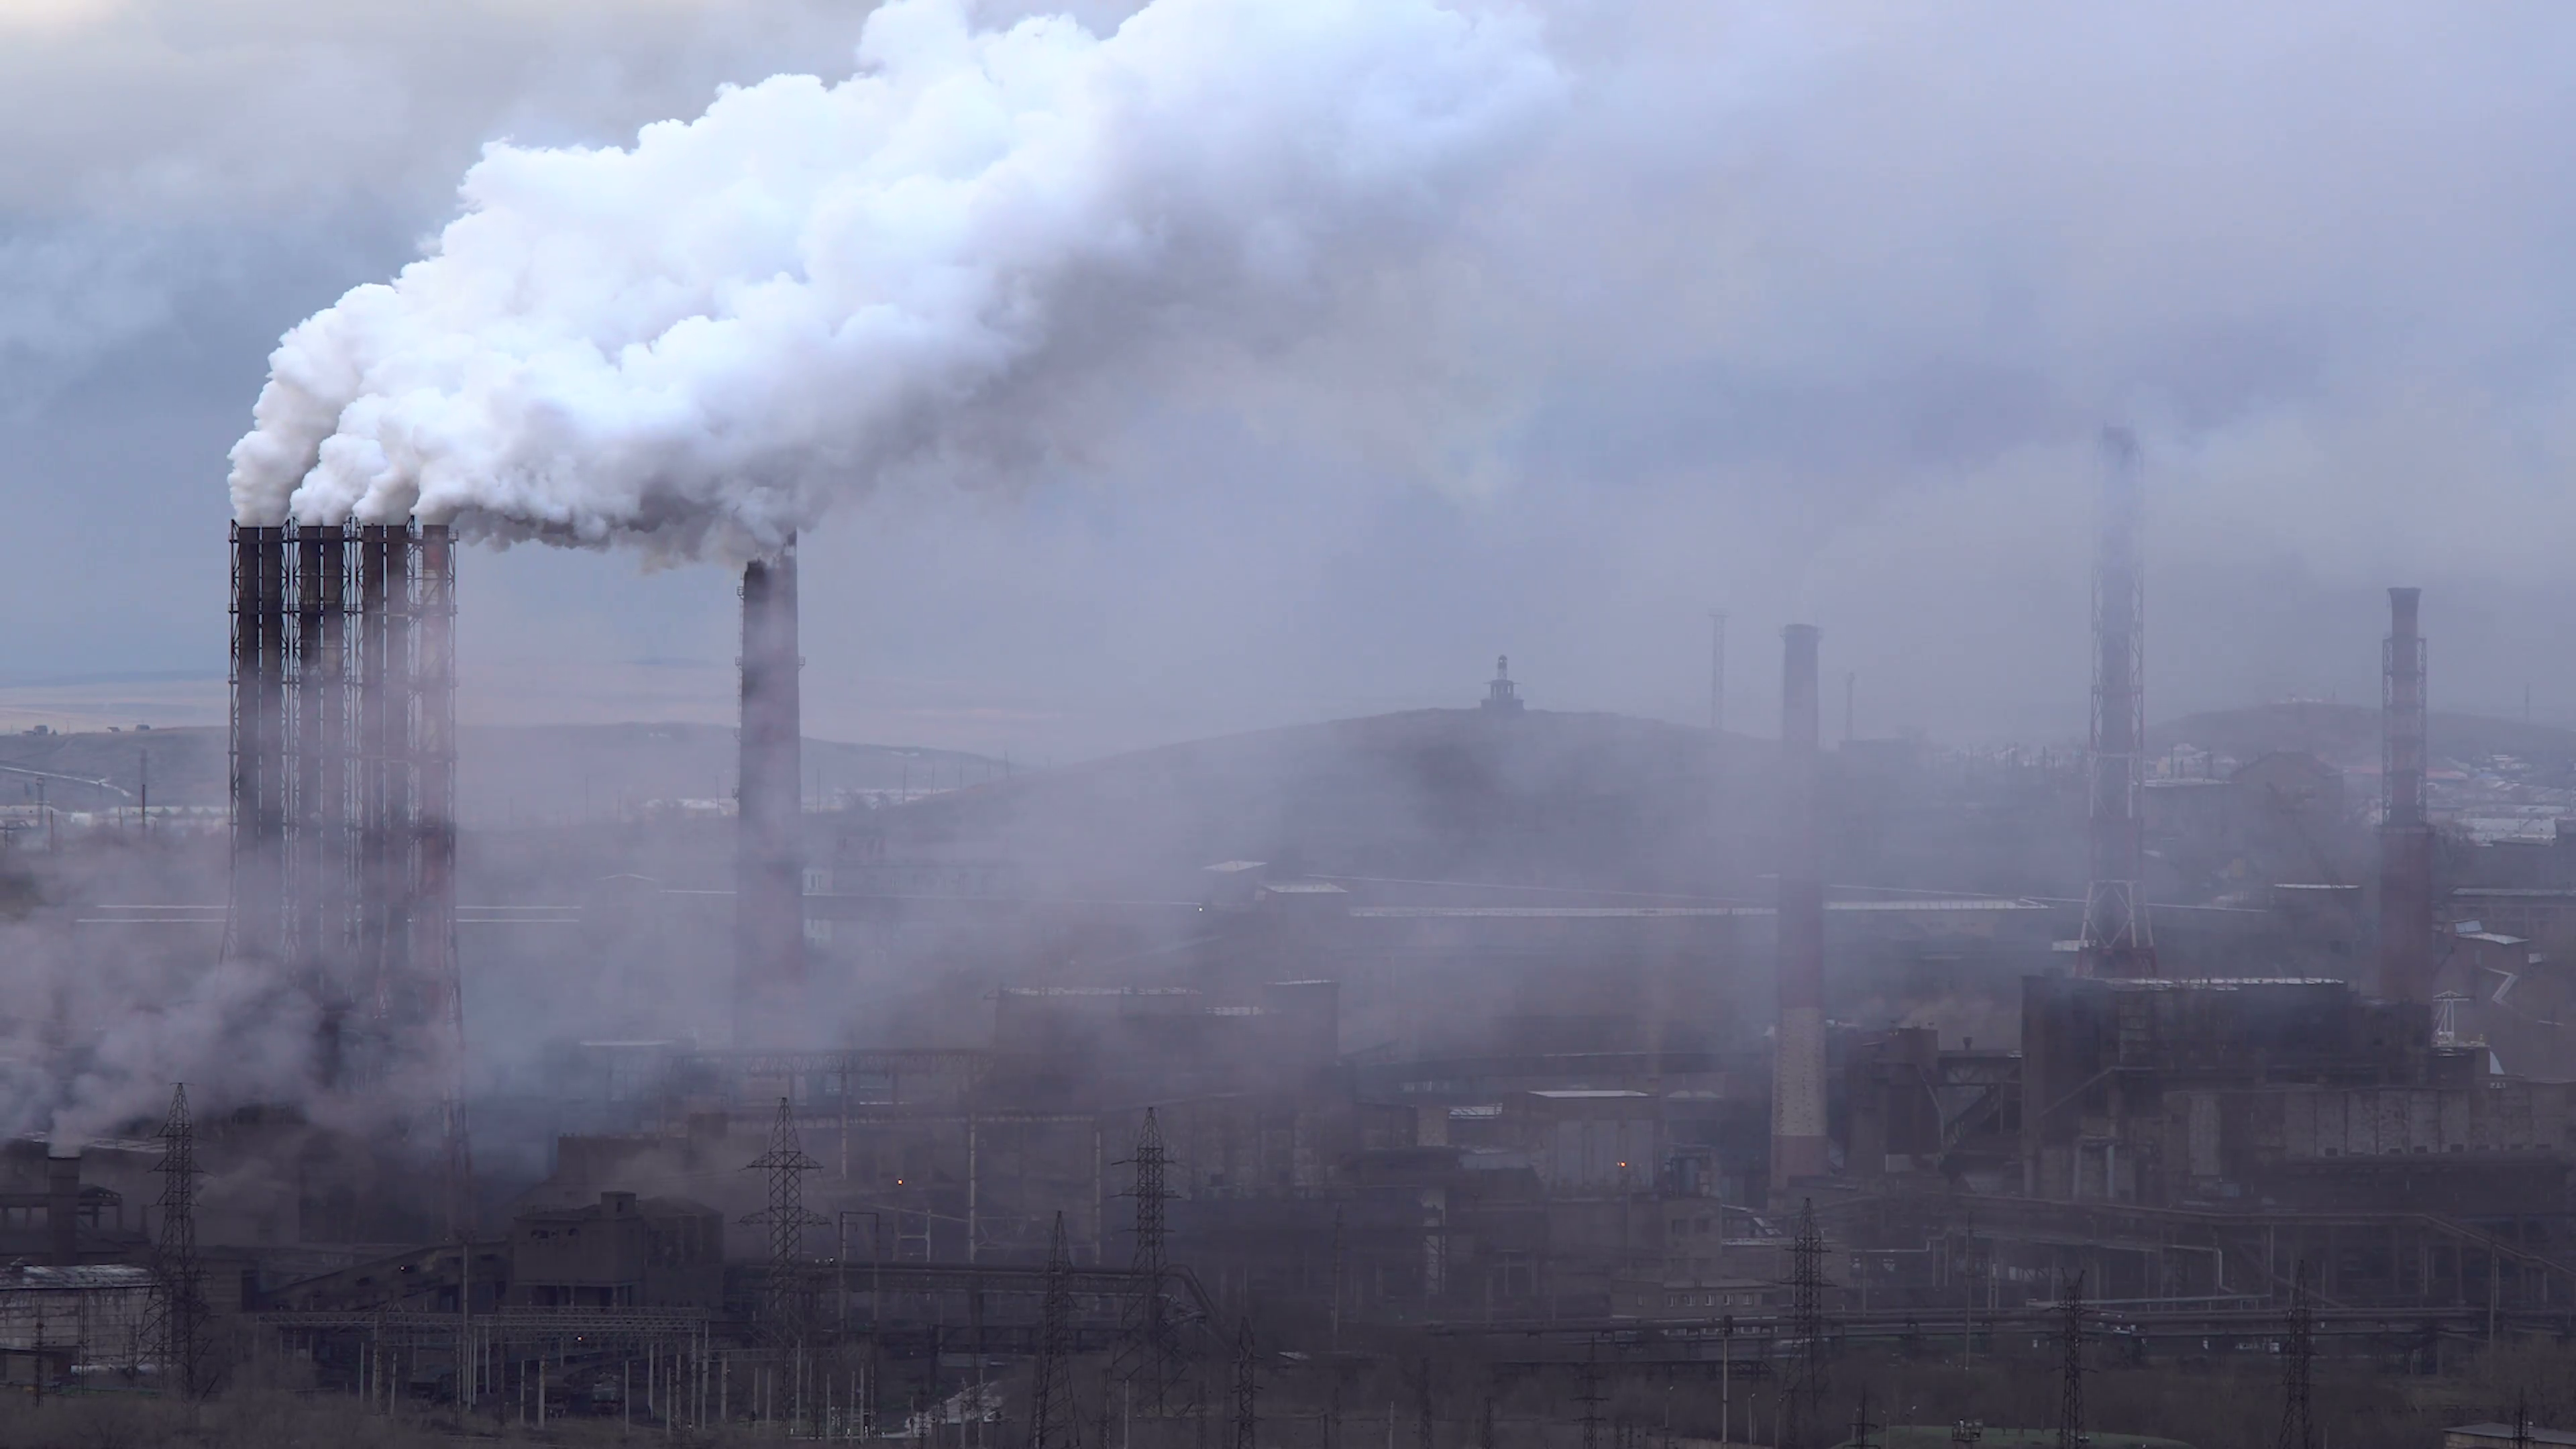 Air Pollution From Industrial Plants Large Plant on the 3840x2160